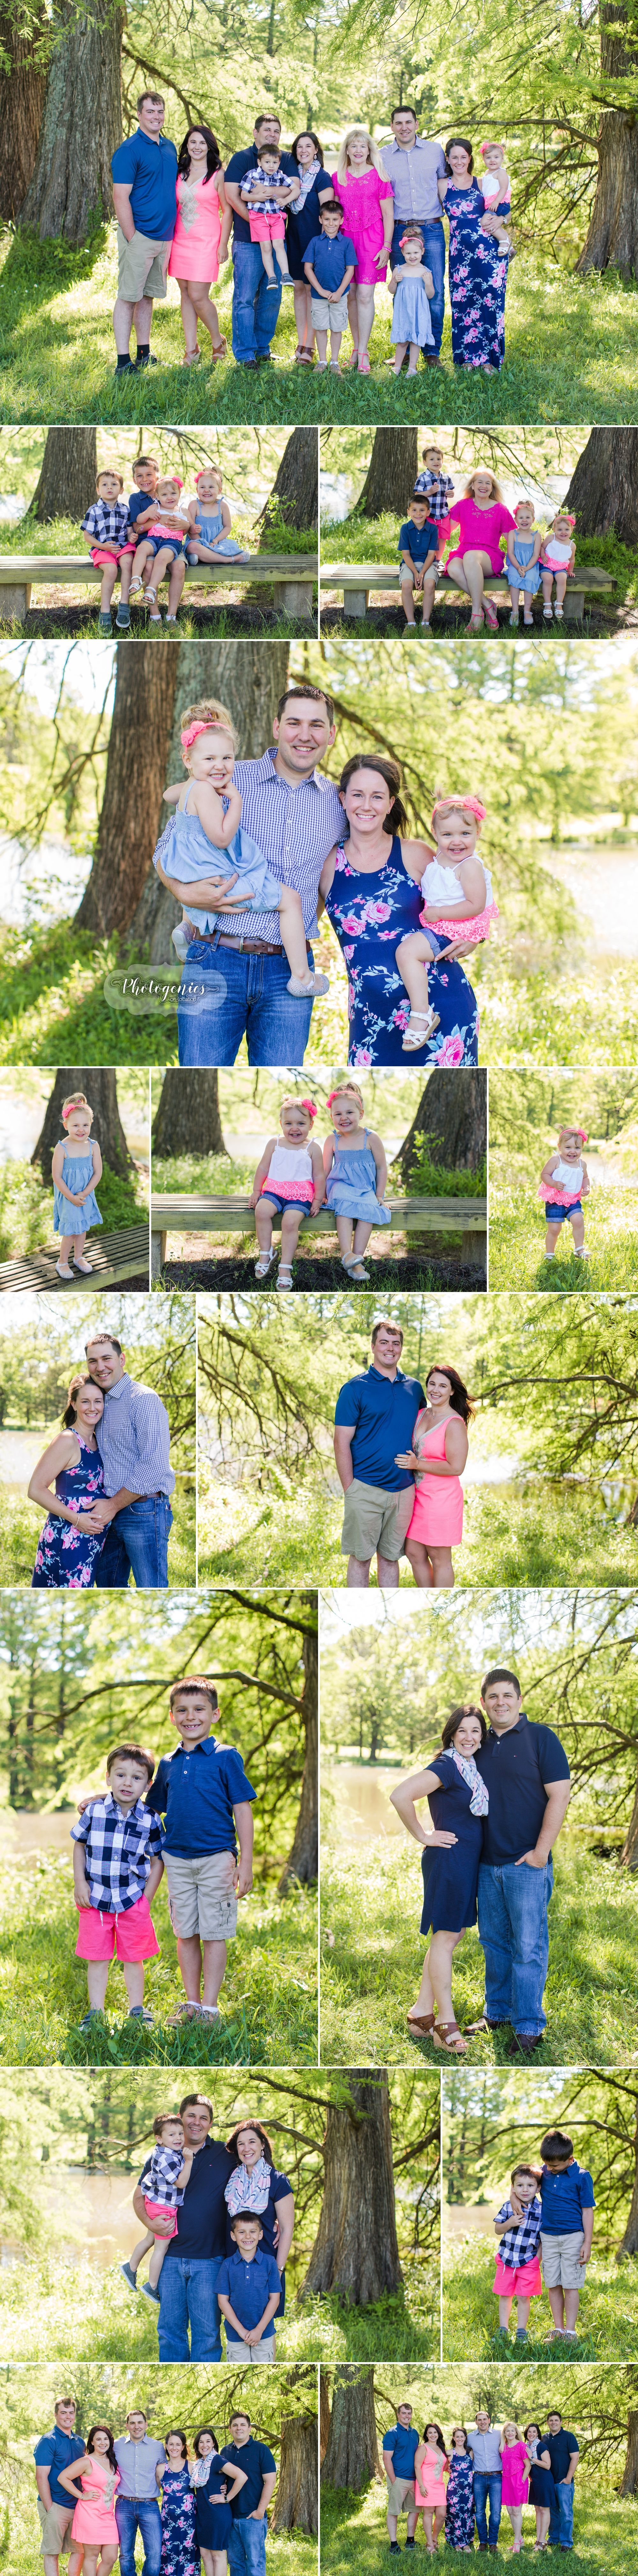 THE BLOG #extendedfamilyphotography extended_family_session_photography_poses_ideas_colors_what_to_wear_large_group #extendedfamilyphotography